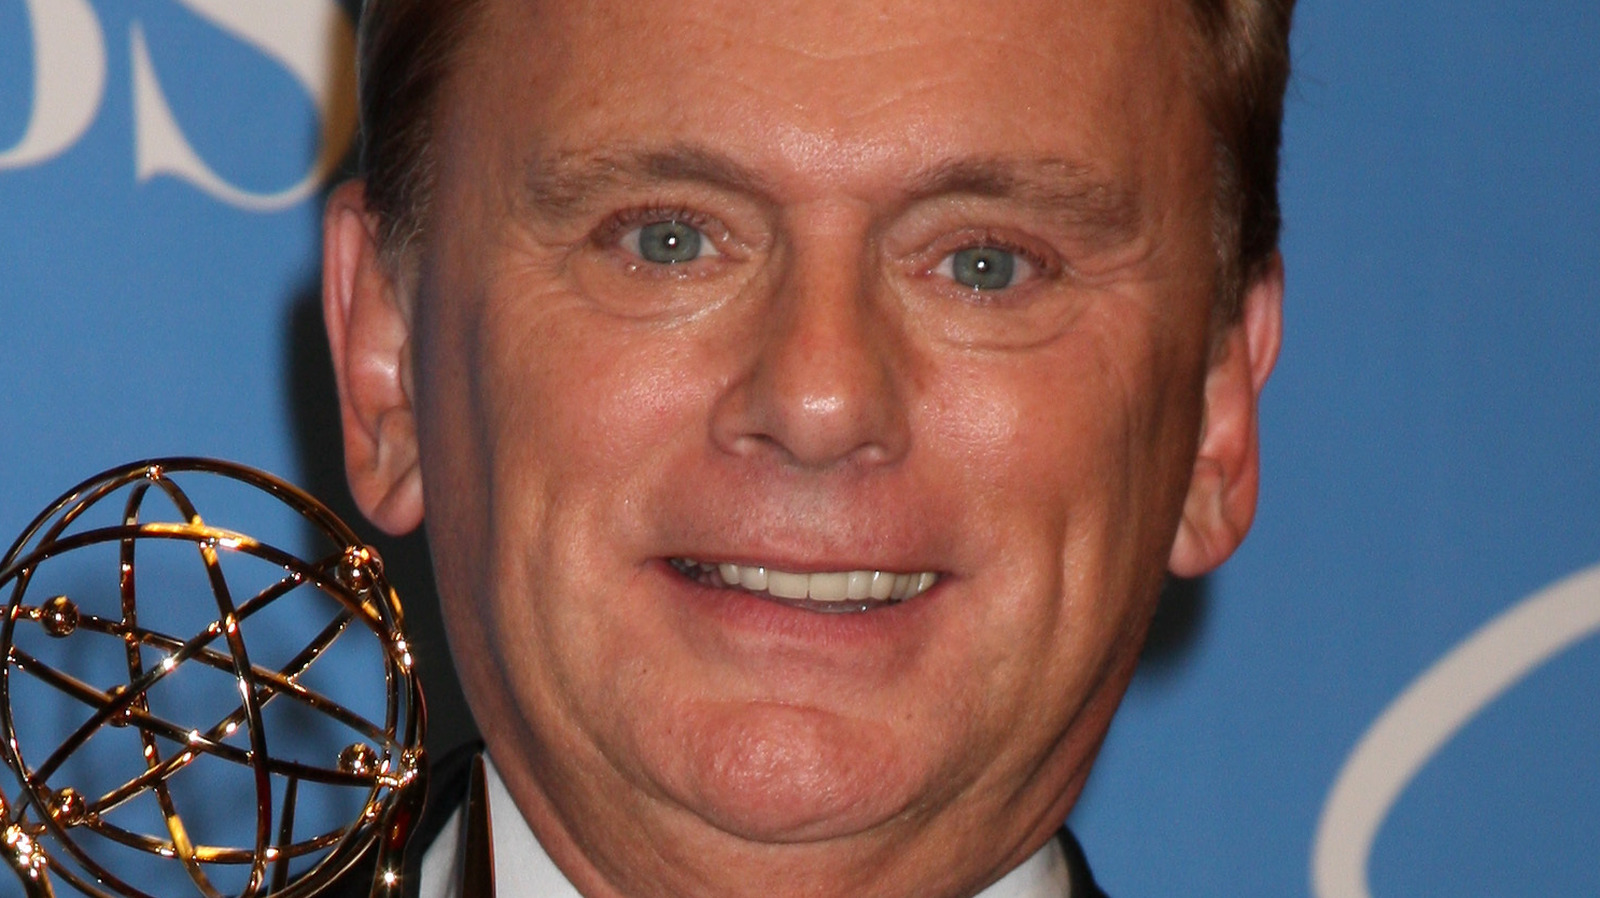 Are Pat Sajak And Vanna White Ready To Leave Wheel Of Fortune?